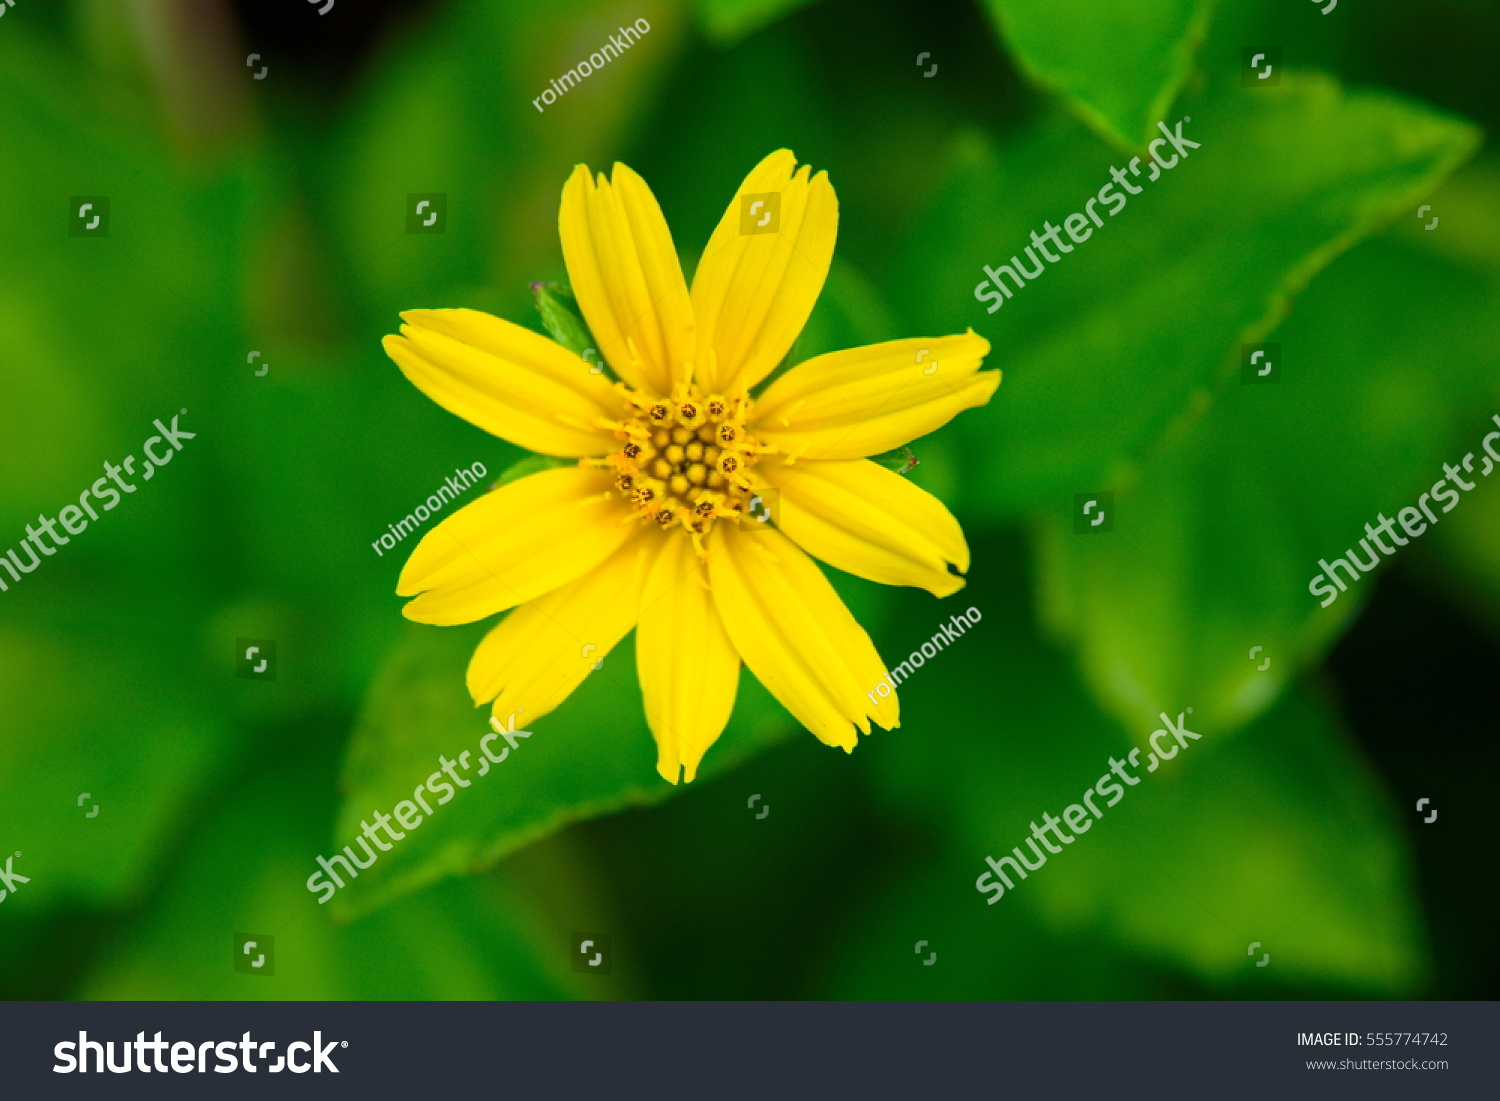 A Yellow Flower With Green Leaves As The Background Called Creeping